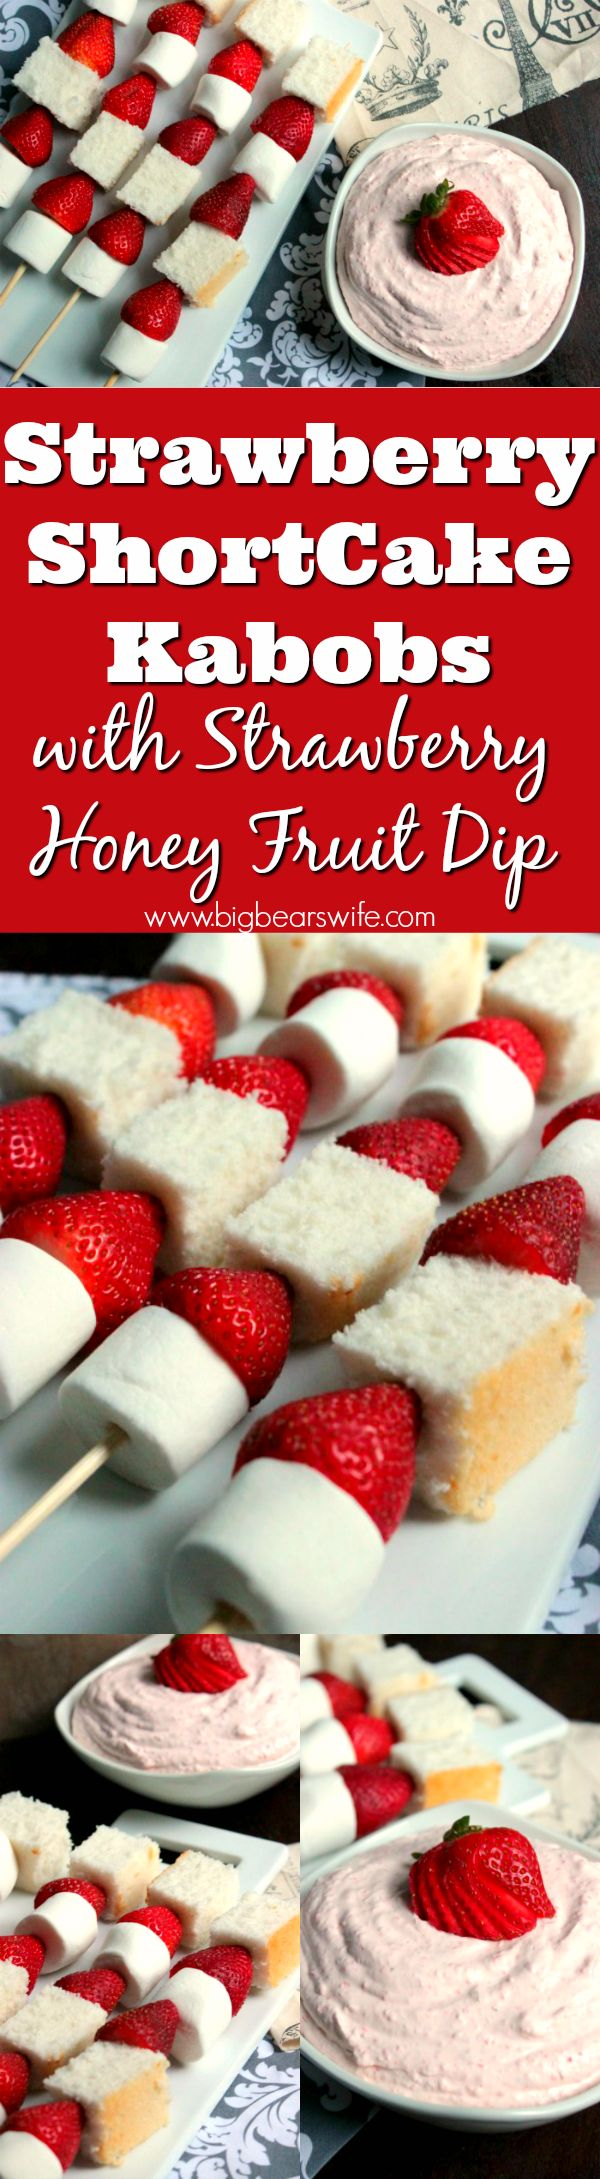 Strawberry ShortCake Kabobs with Strawberry Honey Fruit Dip - Love Strawberry ShortCake? You're going to love these Strawberry ShortCake Kabobs and Strawberry Honey Fruit Dip! Such an fun dessert for kids and adults!